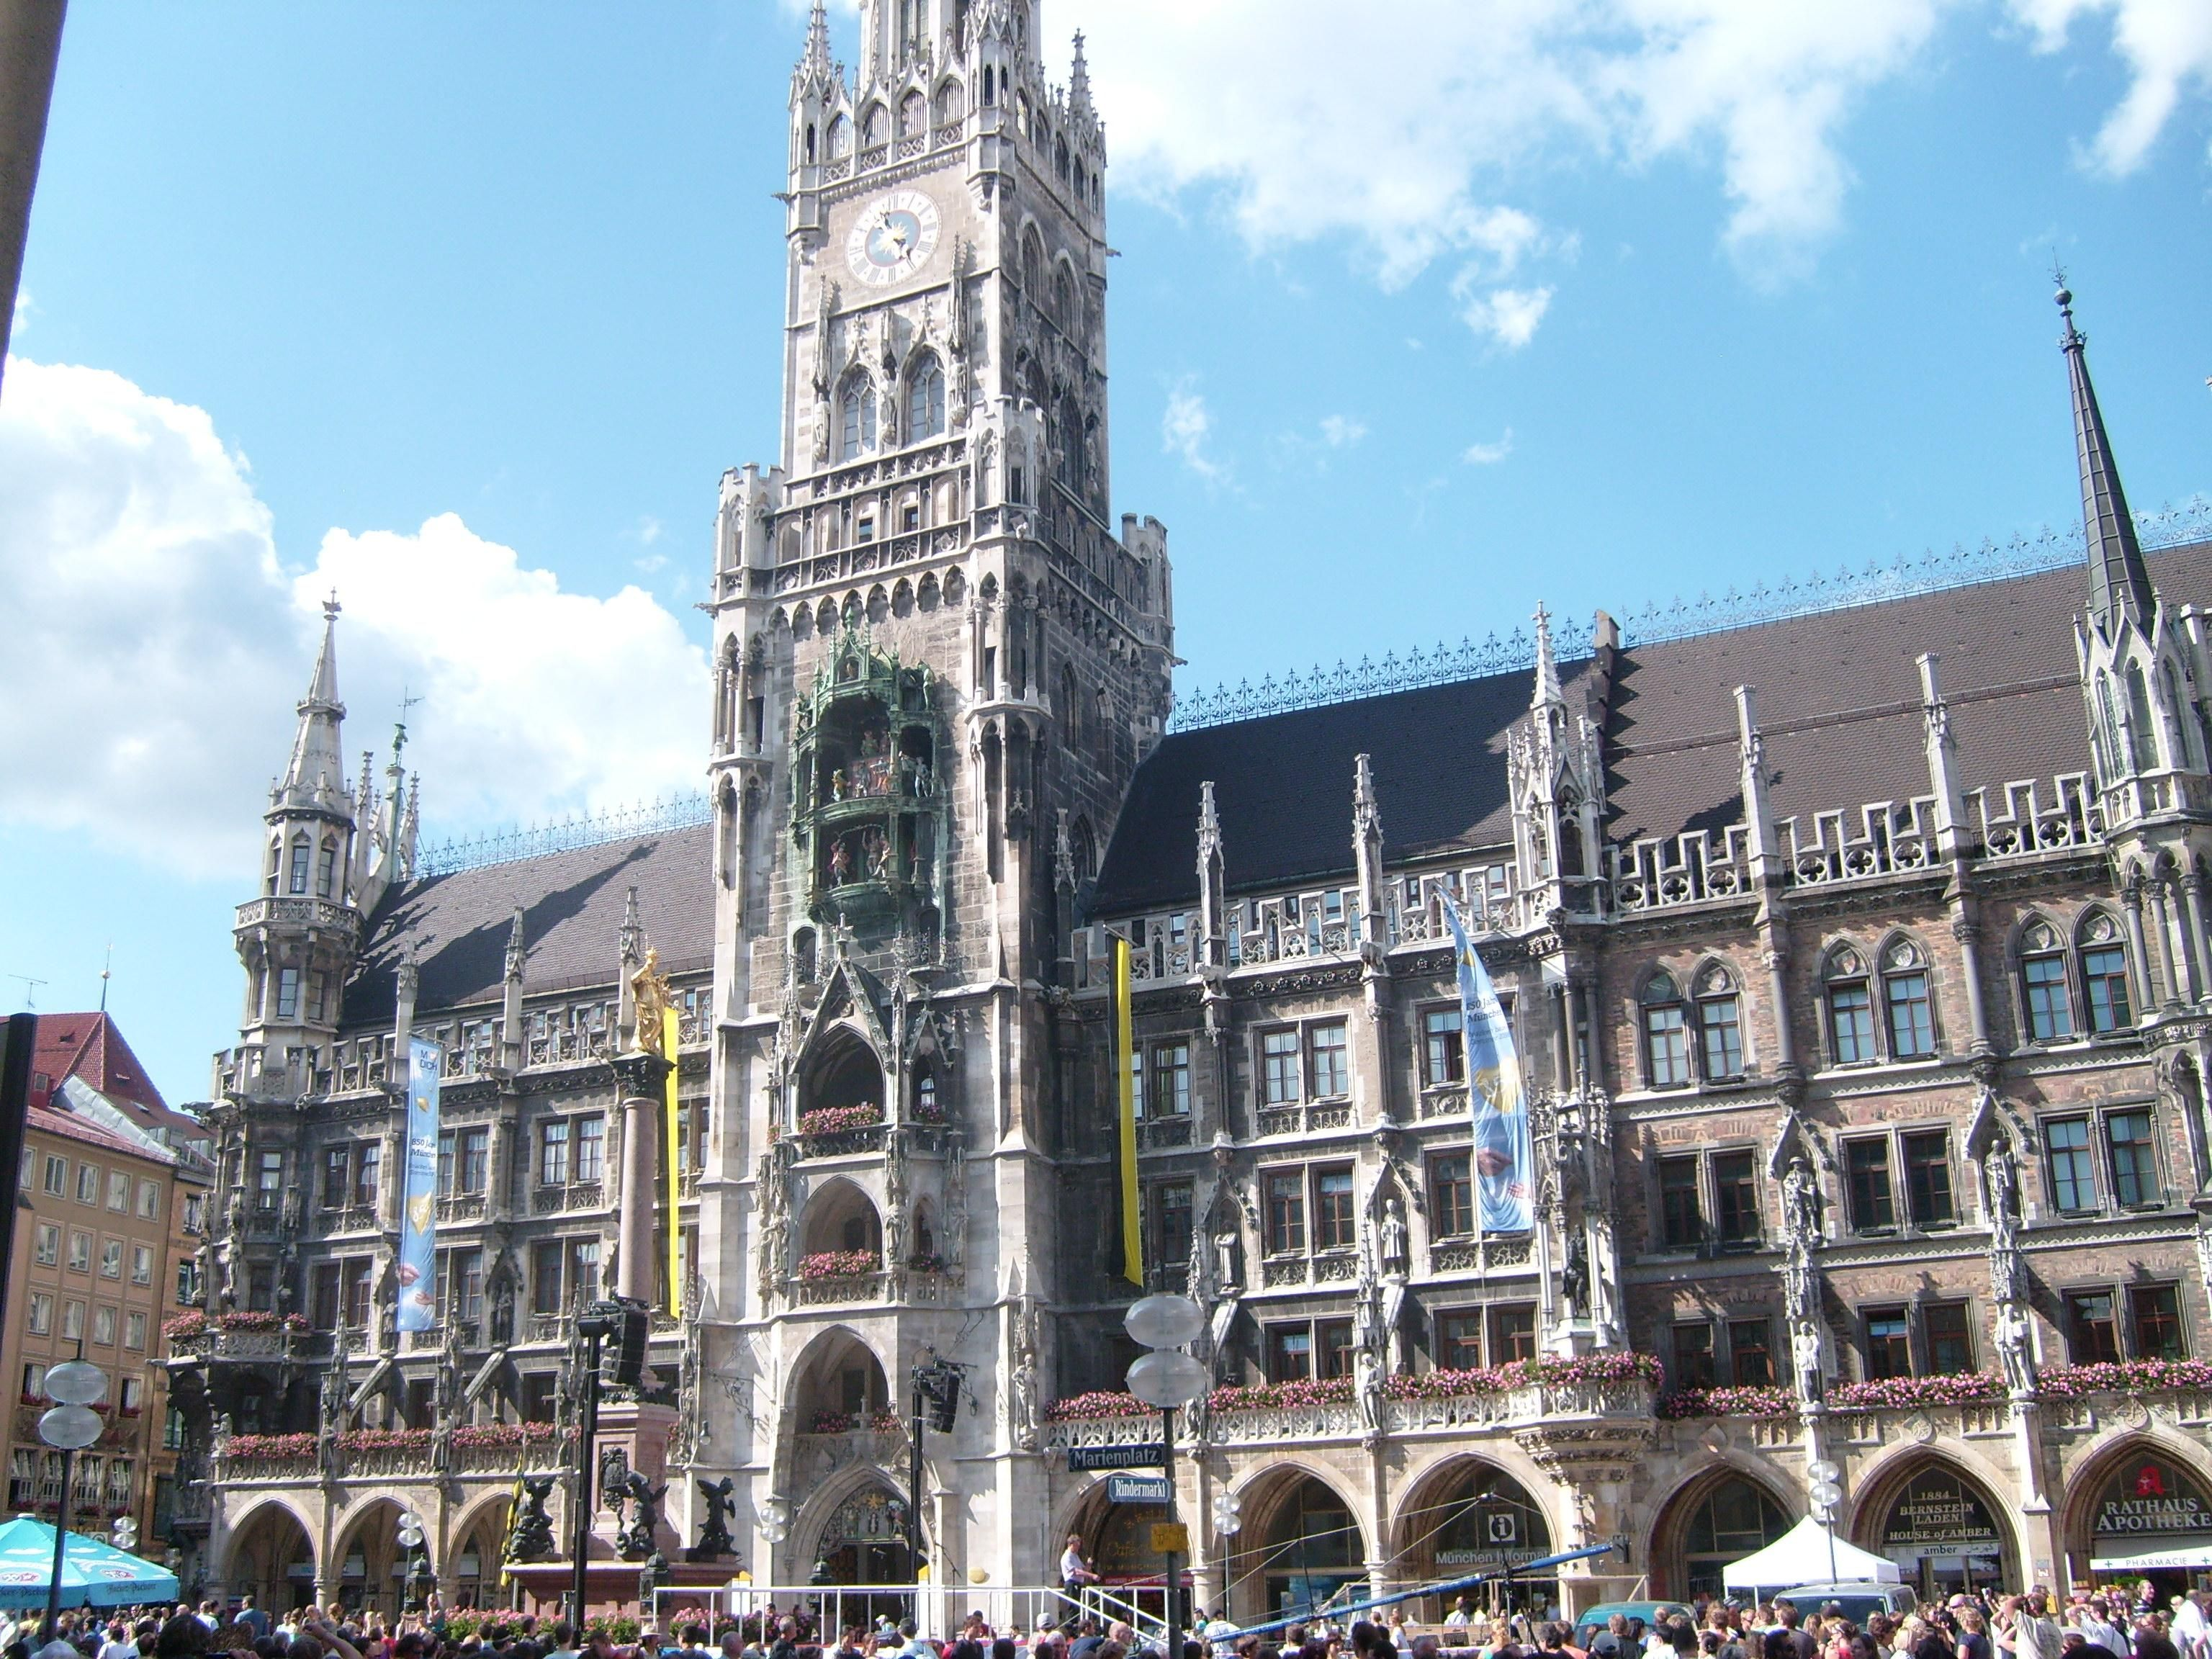 Rathaus Glockenspiel In Munich Germany Been There Done That Ferry Building San Francisco Places Of Interest Places To Go